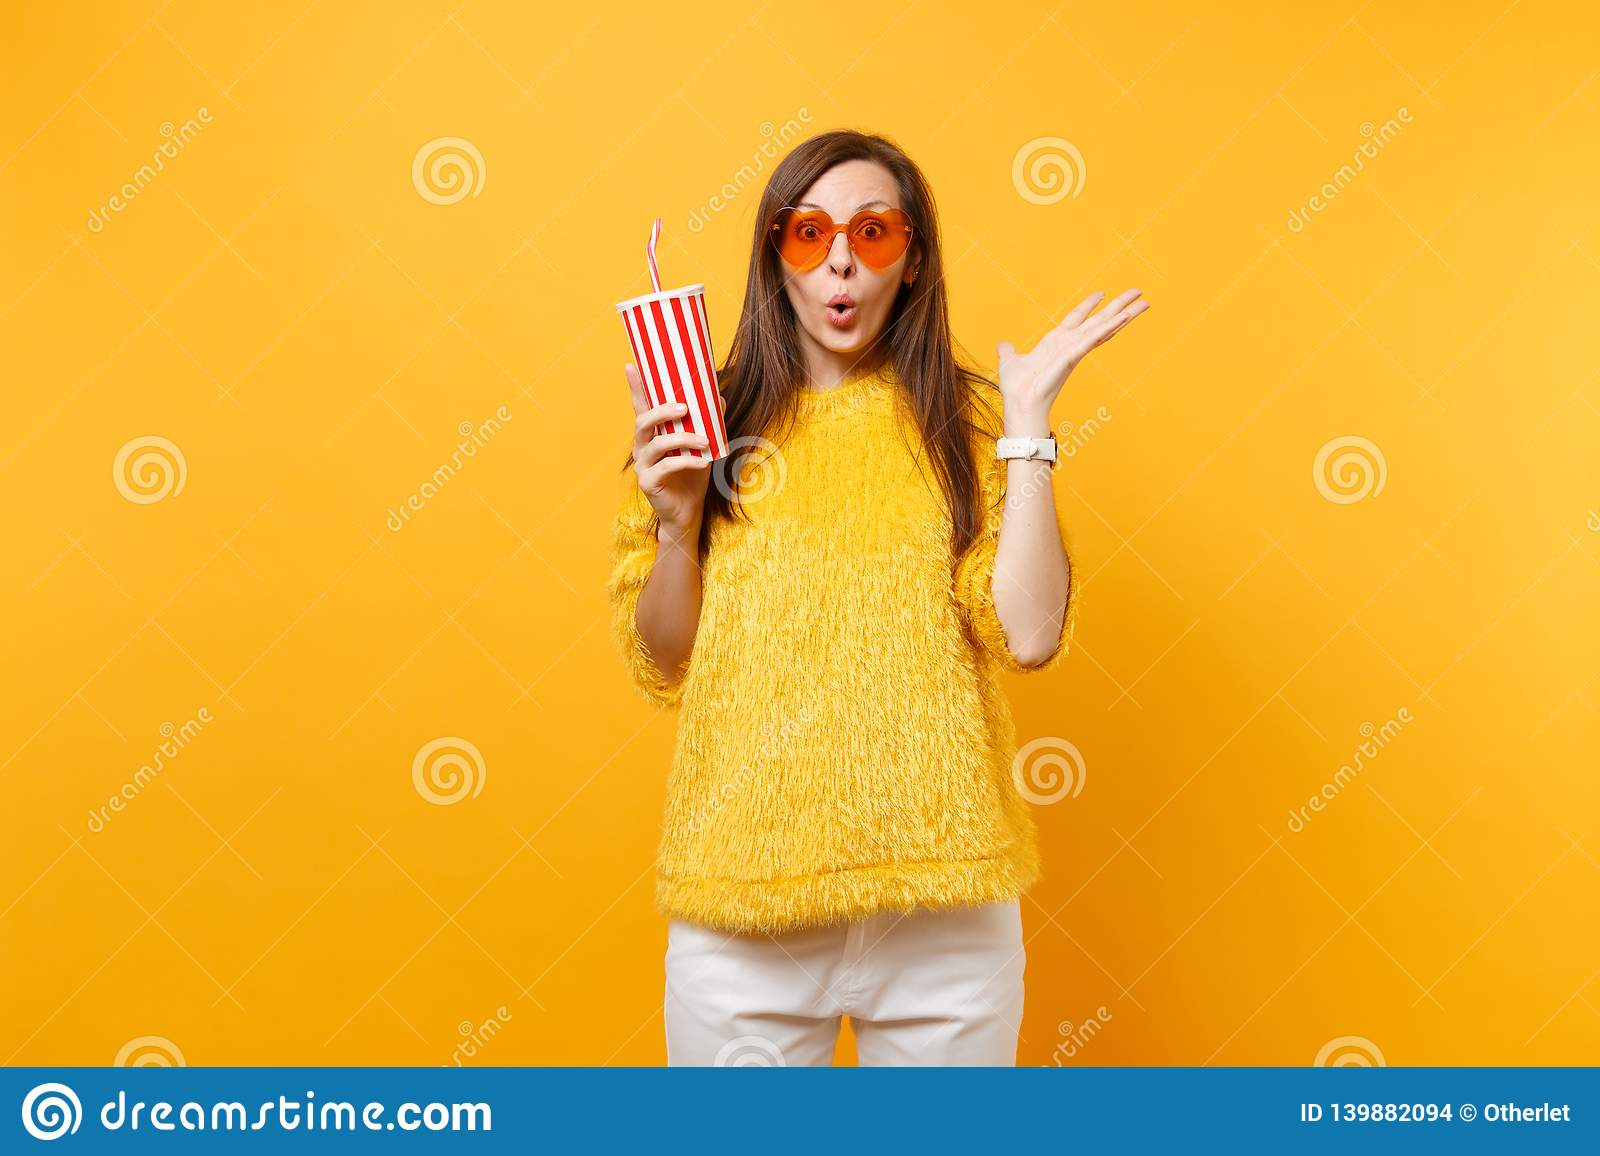 Excited shocked young woman in heart orange glasses spreading hands, holding plastic cup with cola or soda isolated on